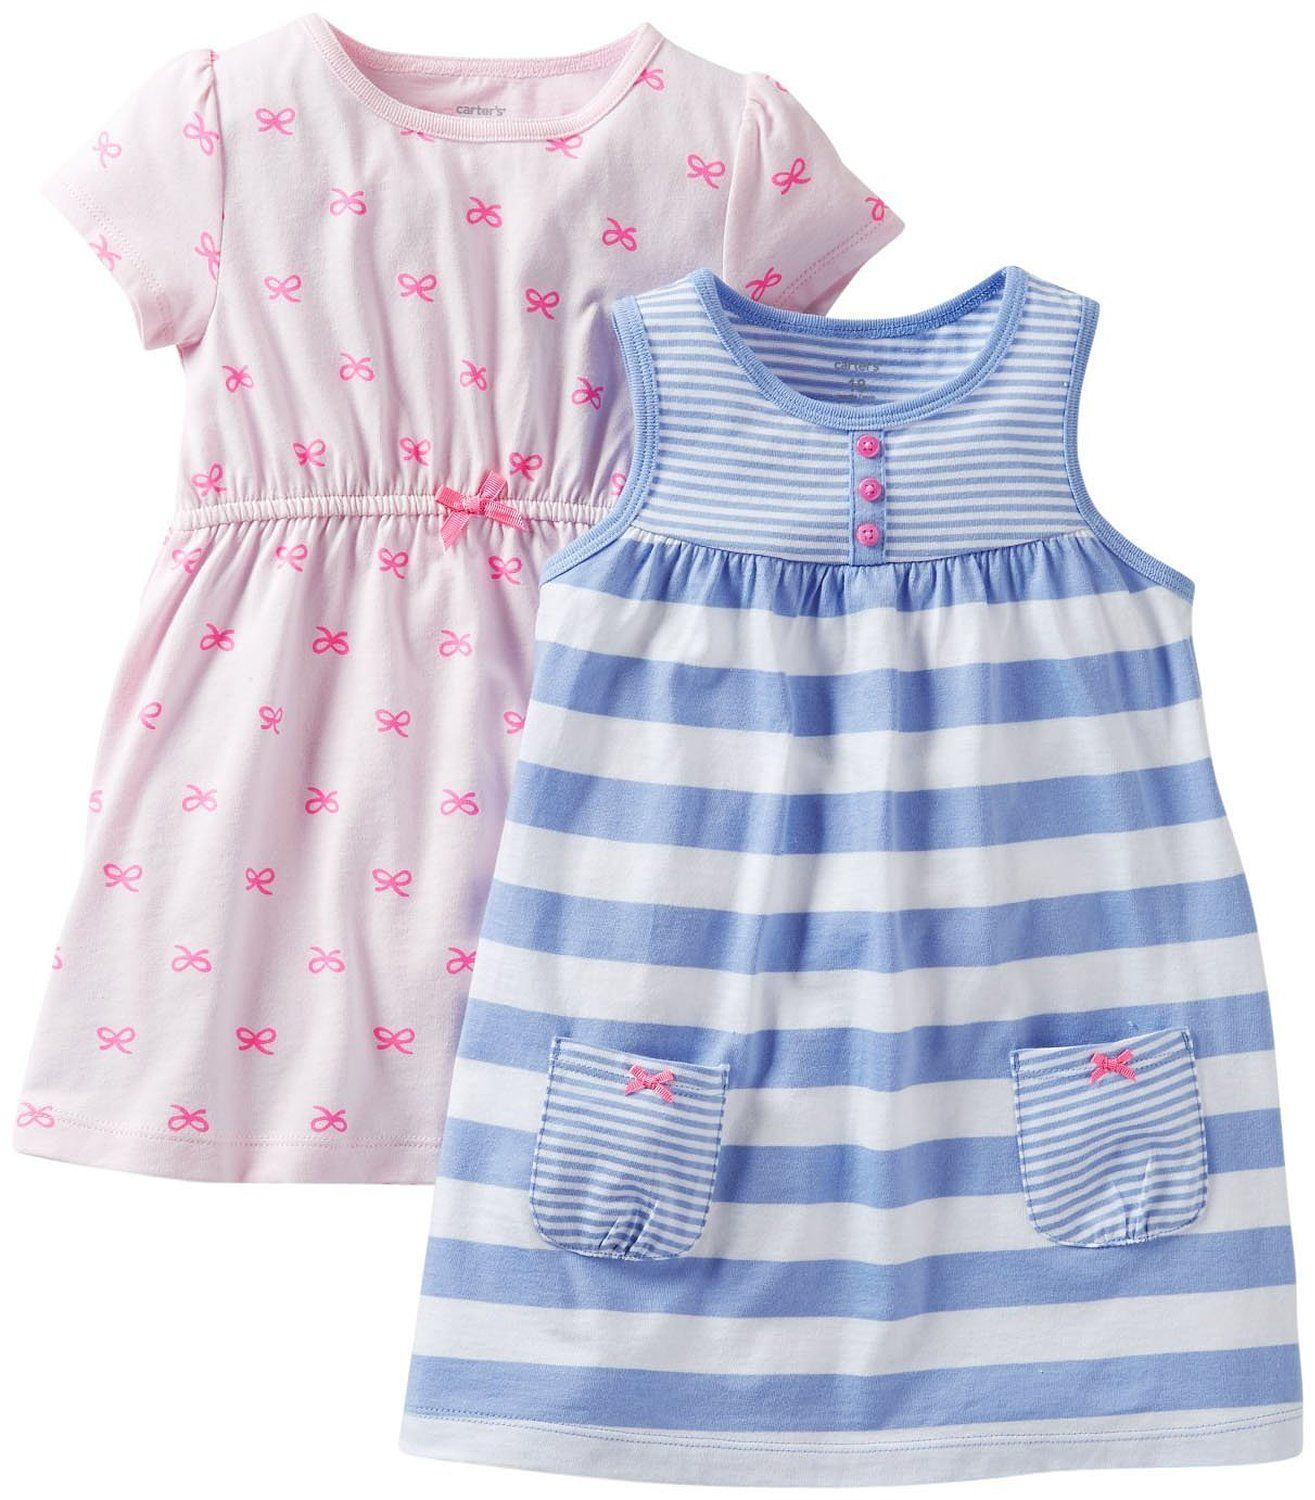 250cb0fb5a443 Amazon.com: Carter's Baby Girls' 2 Piece Dress and Romper Set (Baby):  Clothing